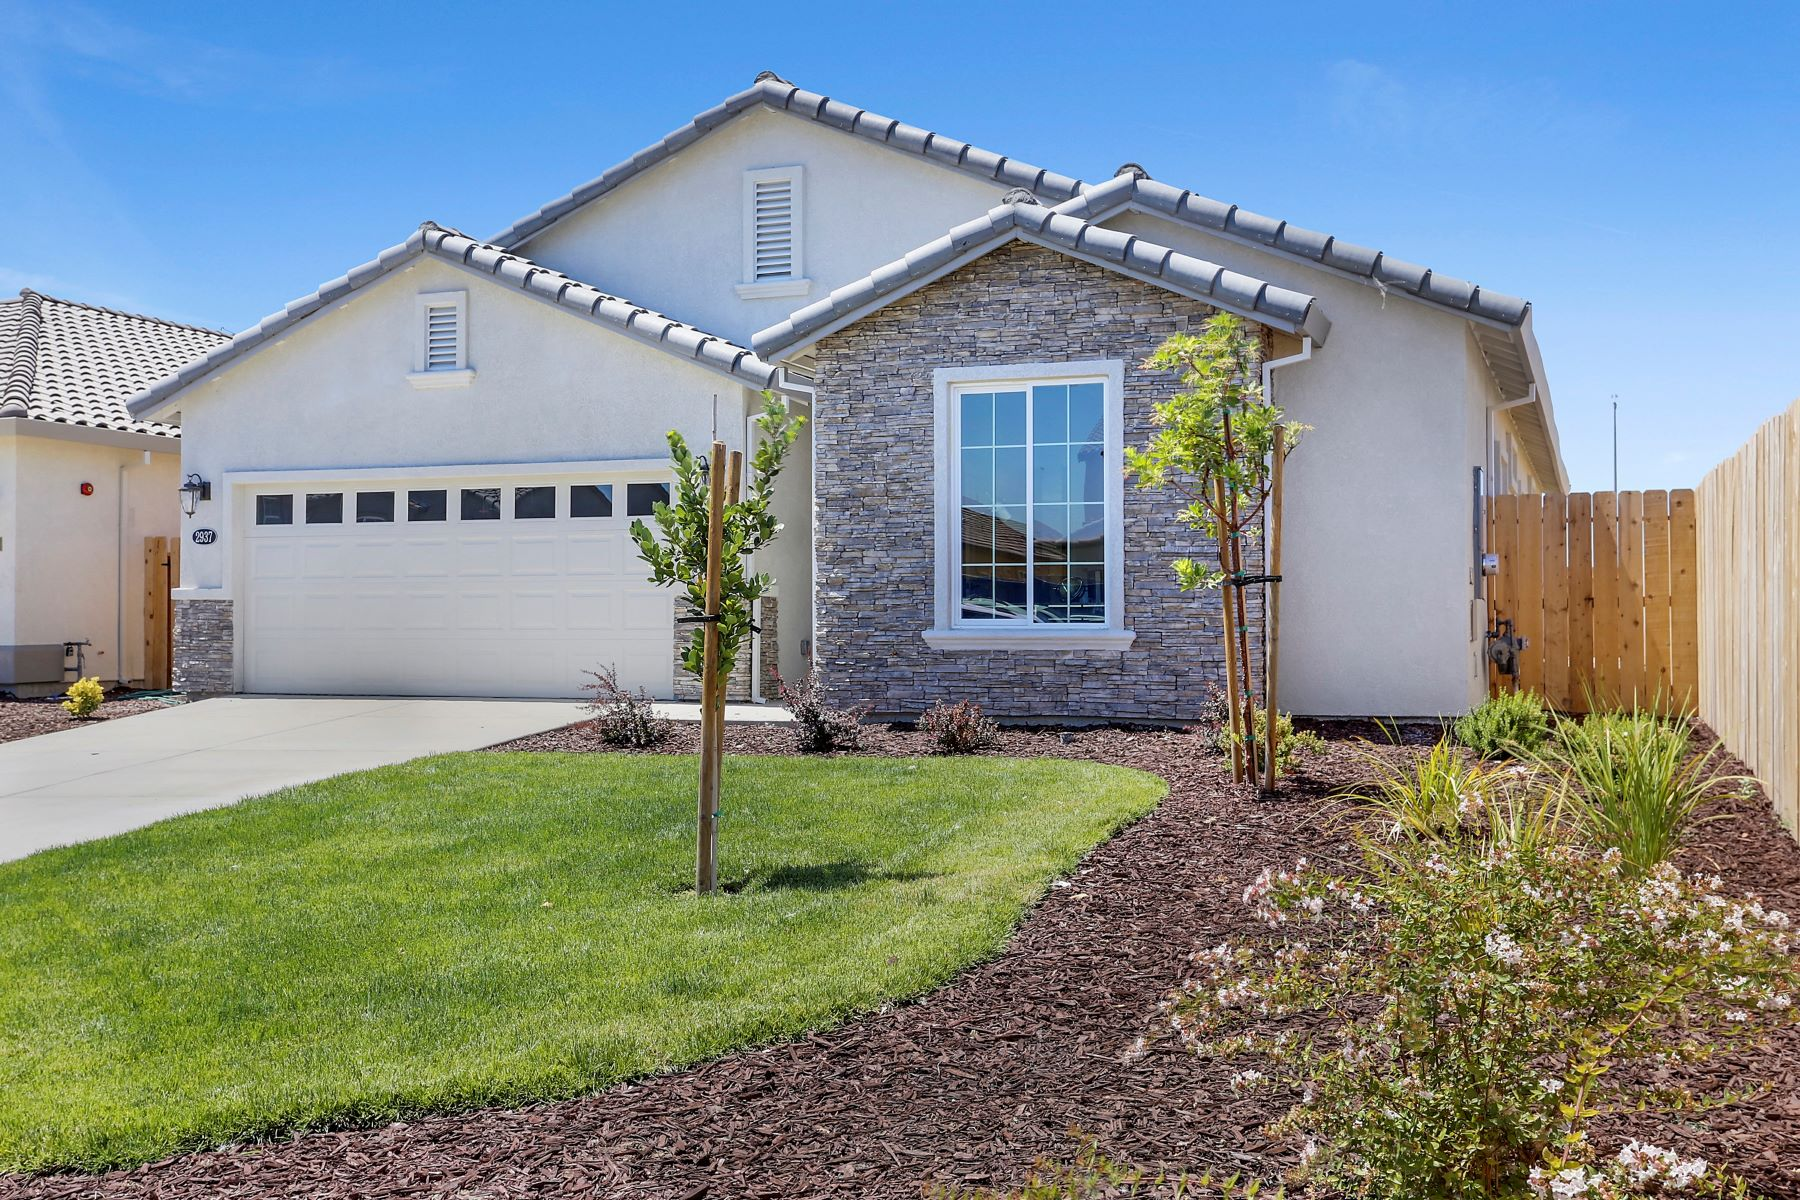 Single Family Homes for Sale at New Construction On The Street Of Dreams 1774 Old Oak Drive Stockton, California 95206 United States